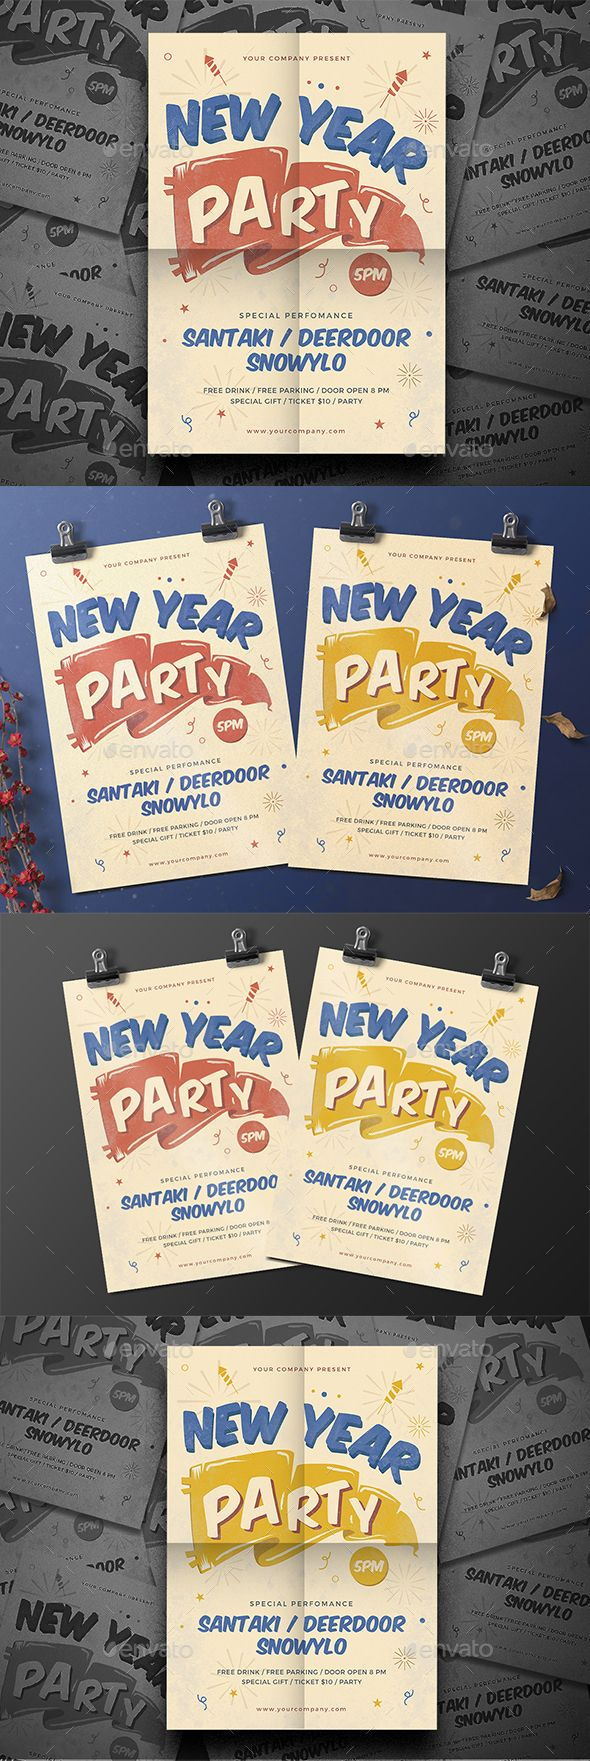 business party invitation letter templates%0A New Year Party Flyer